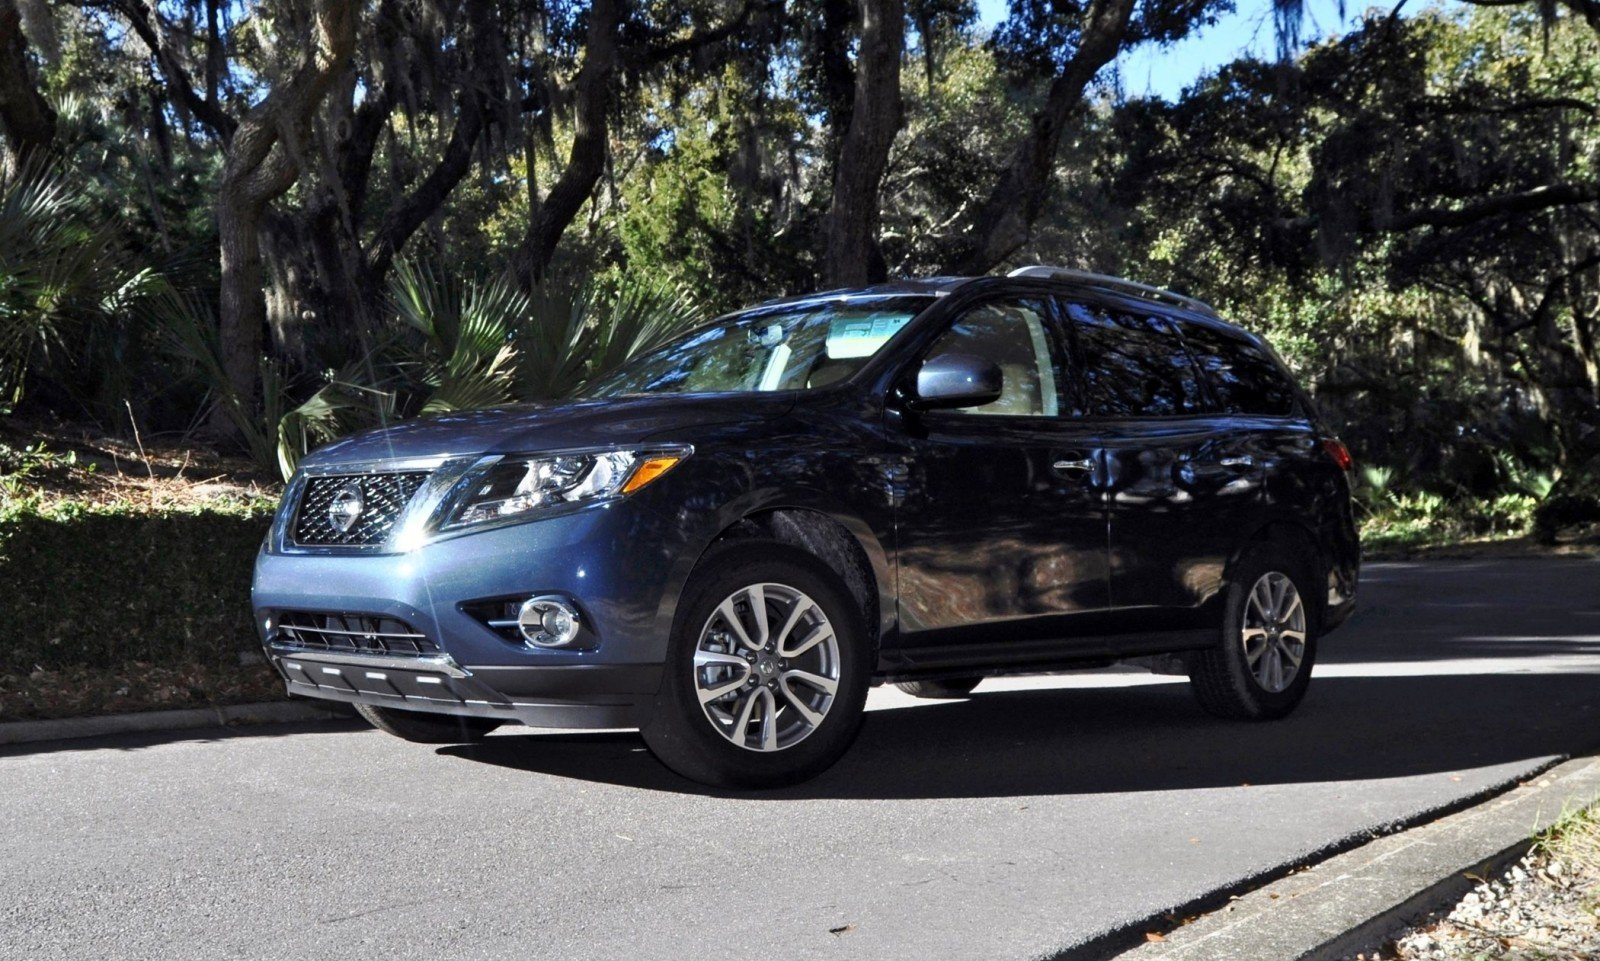 Road Test Review - 2015 Nissan Pathfinder SV 4WD 165